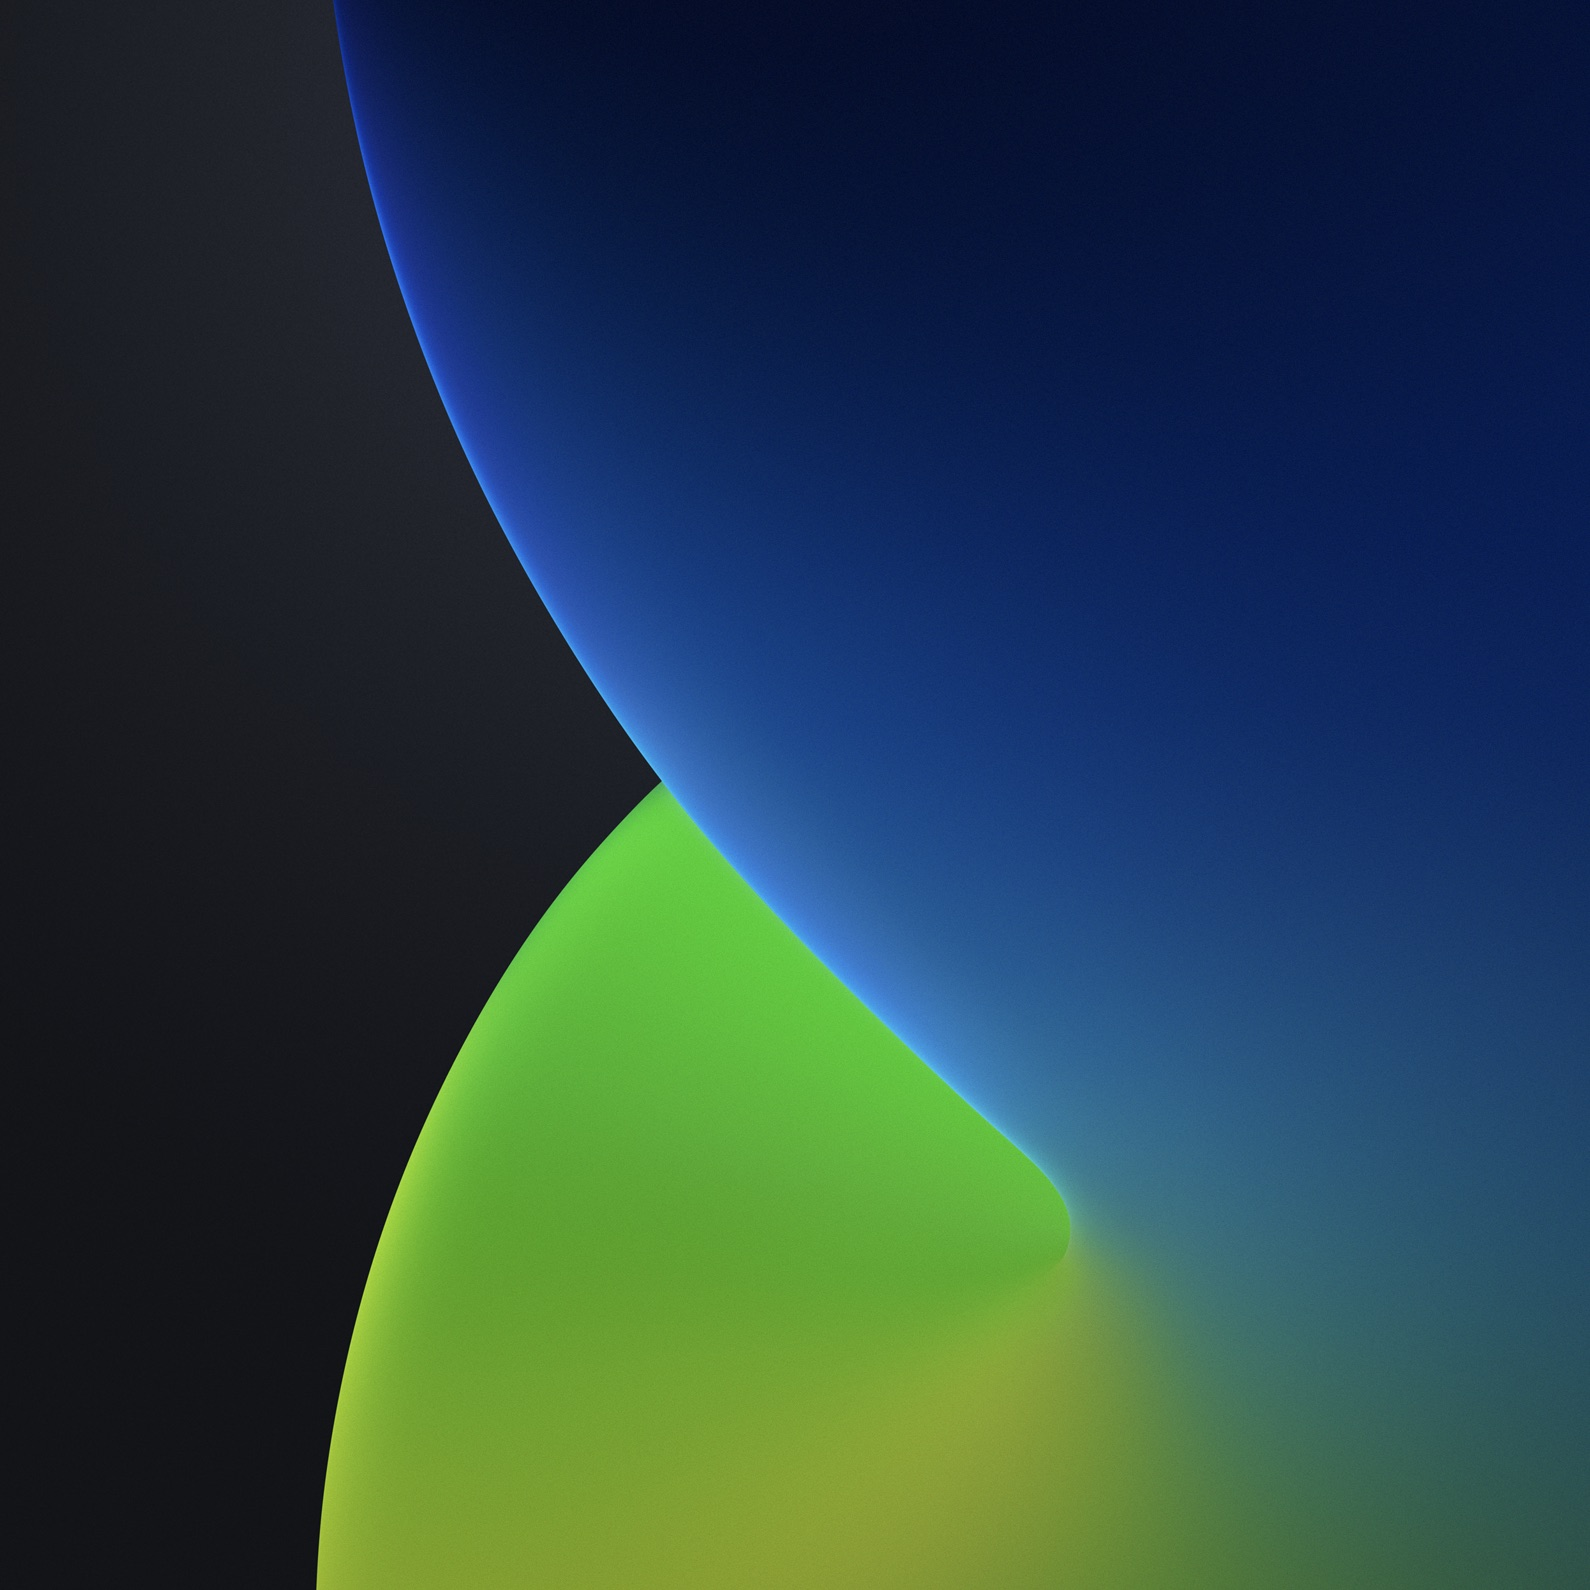 iOS 14 wallpapers for iPhone iPad 1590x1590